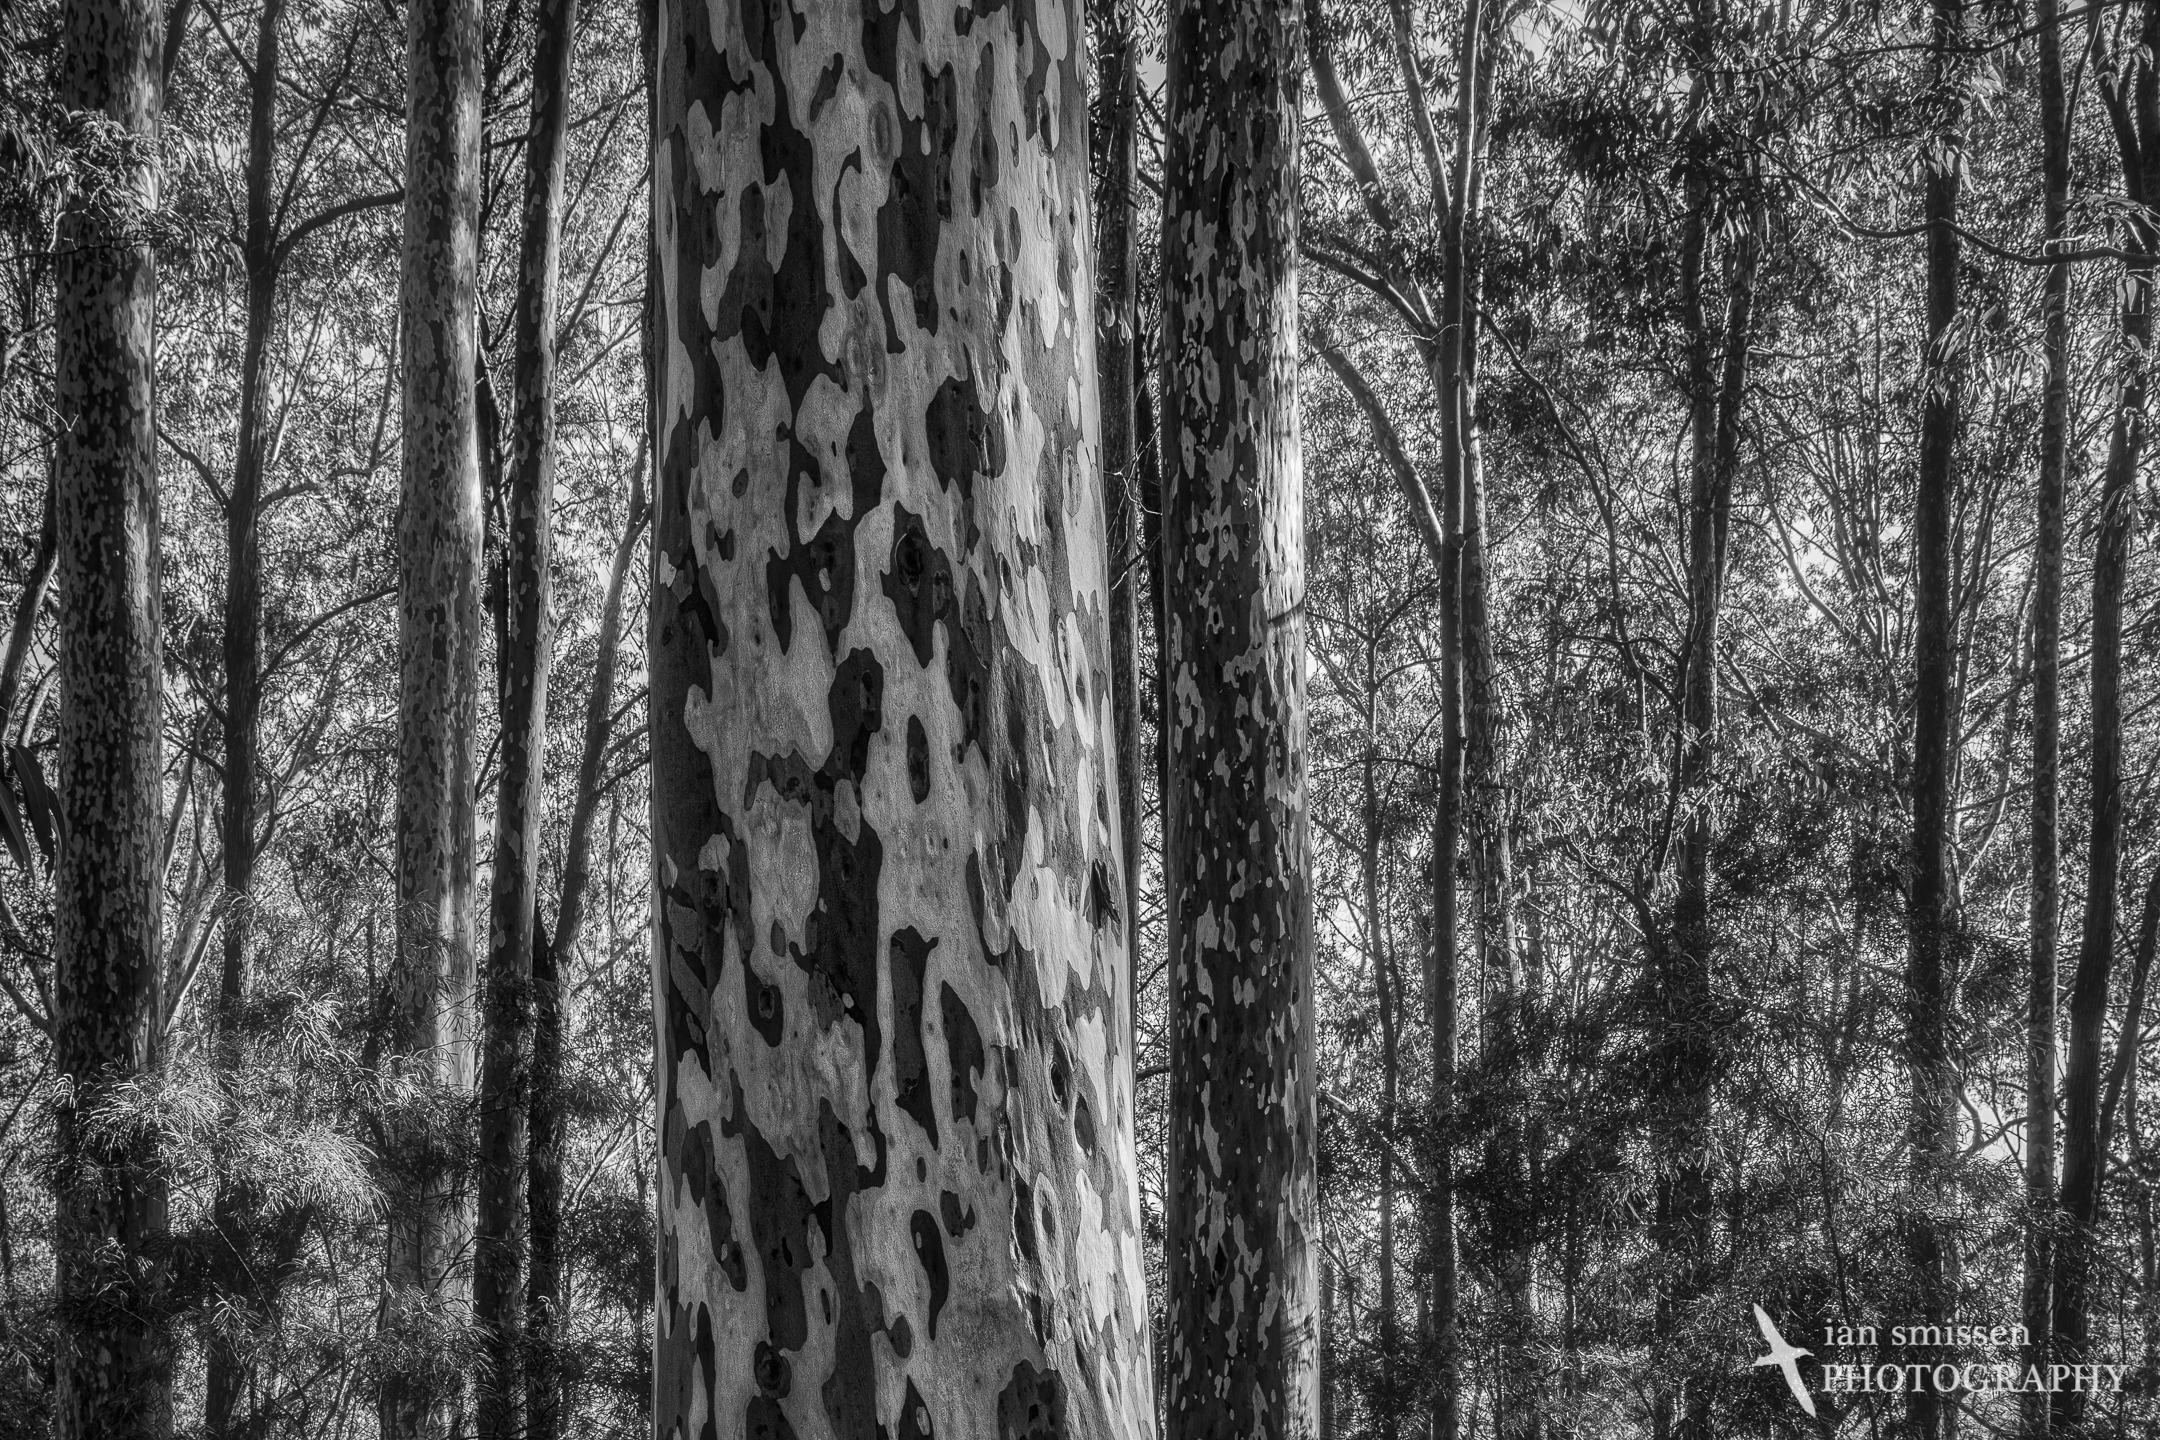 Spotted Gum forest 35mm (cropped from vertical), ISO 100, 1/40-0.4 seconds, 5-shot merged HDR